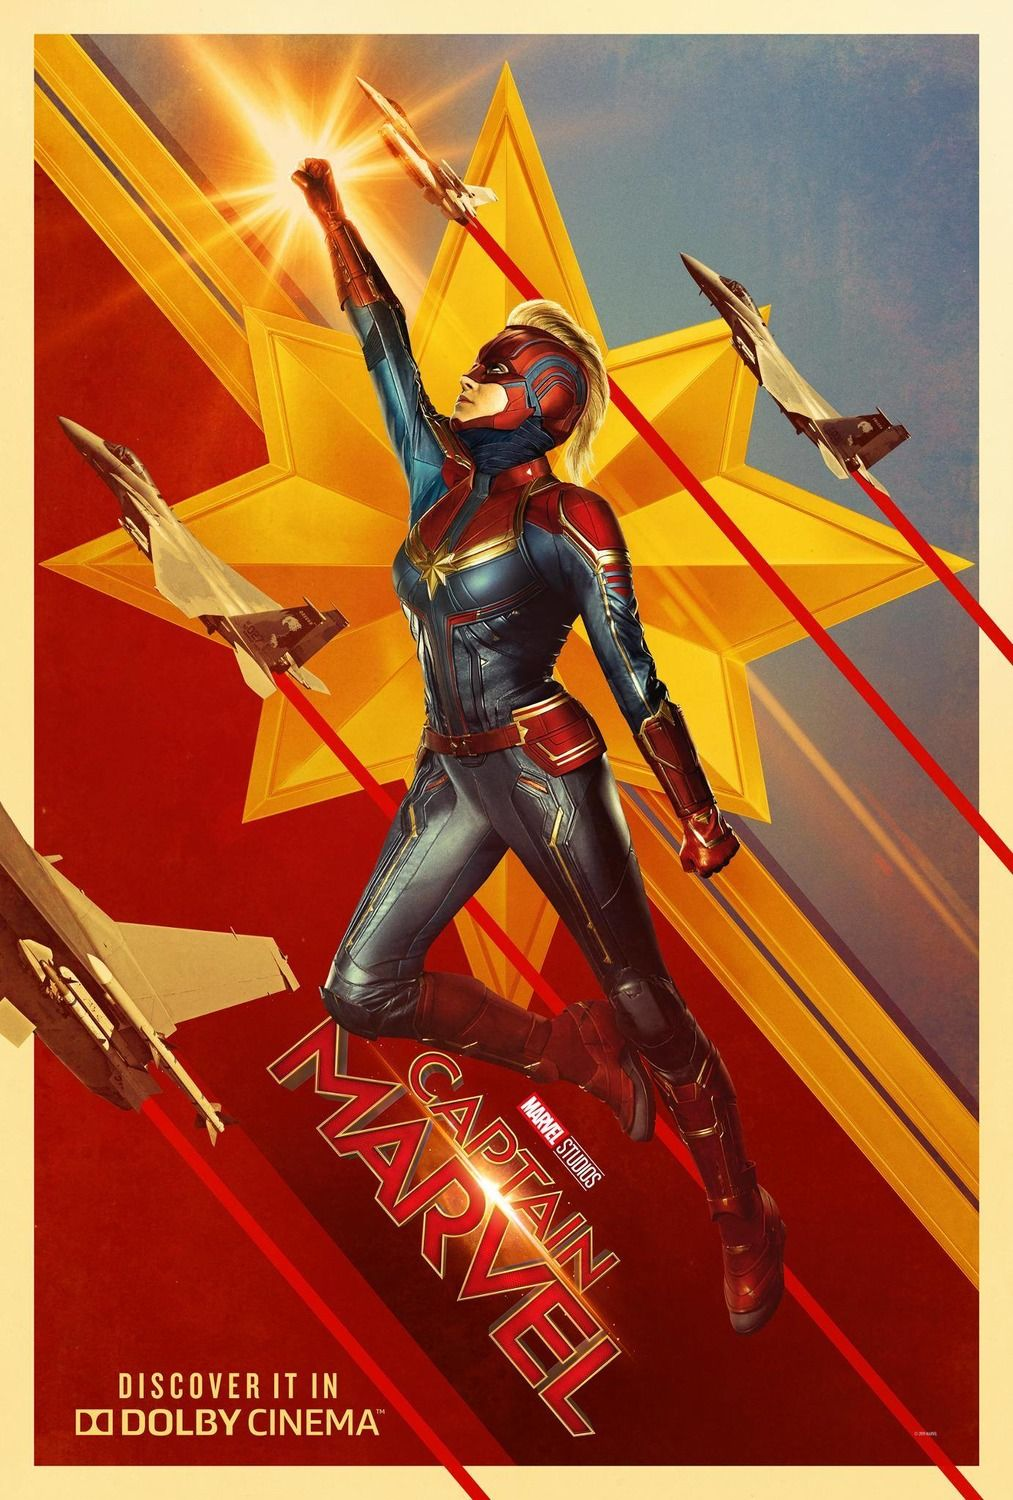 new captain marvel posters show off carol danvers u0026 39  costume